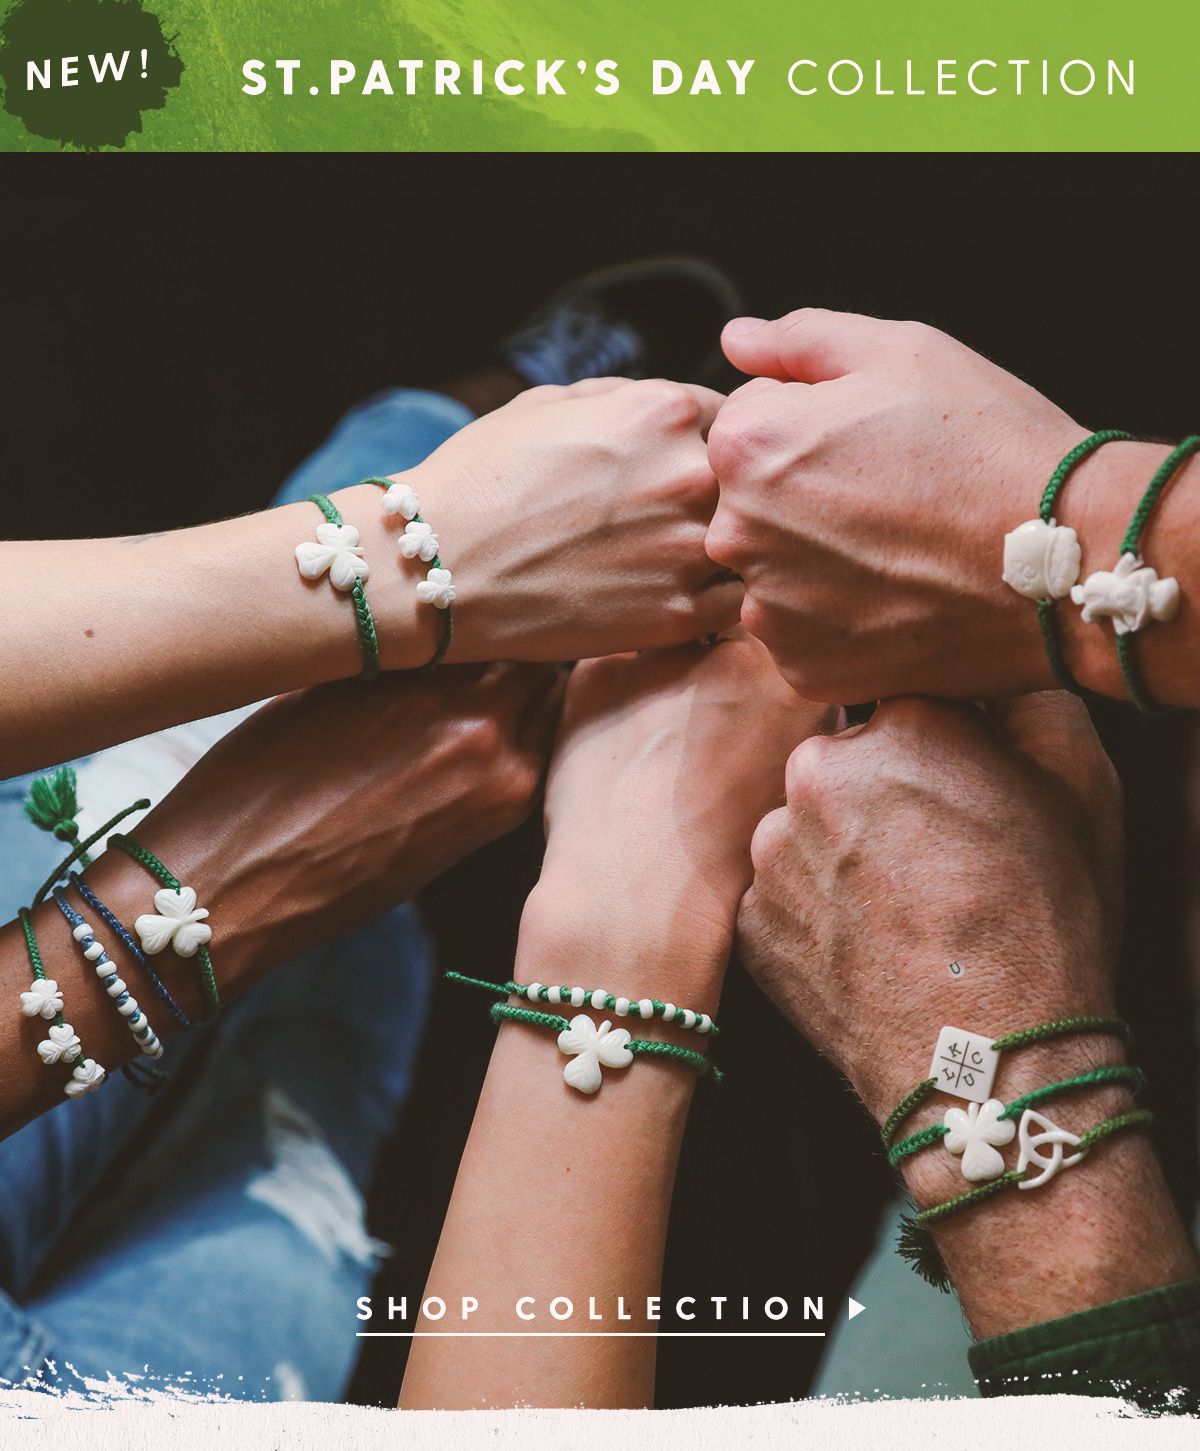 New! St. Patrick's Day Collection. Shop Collection